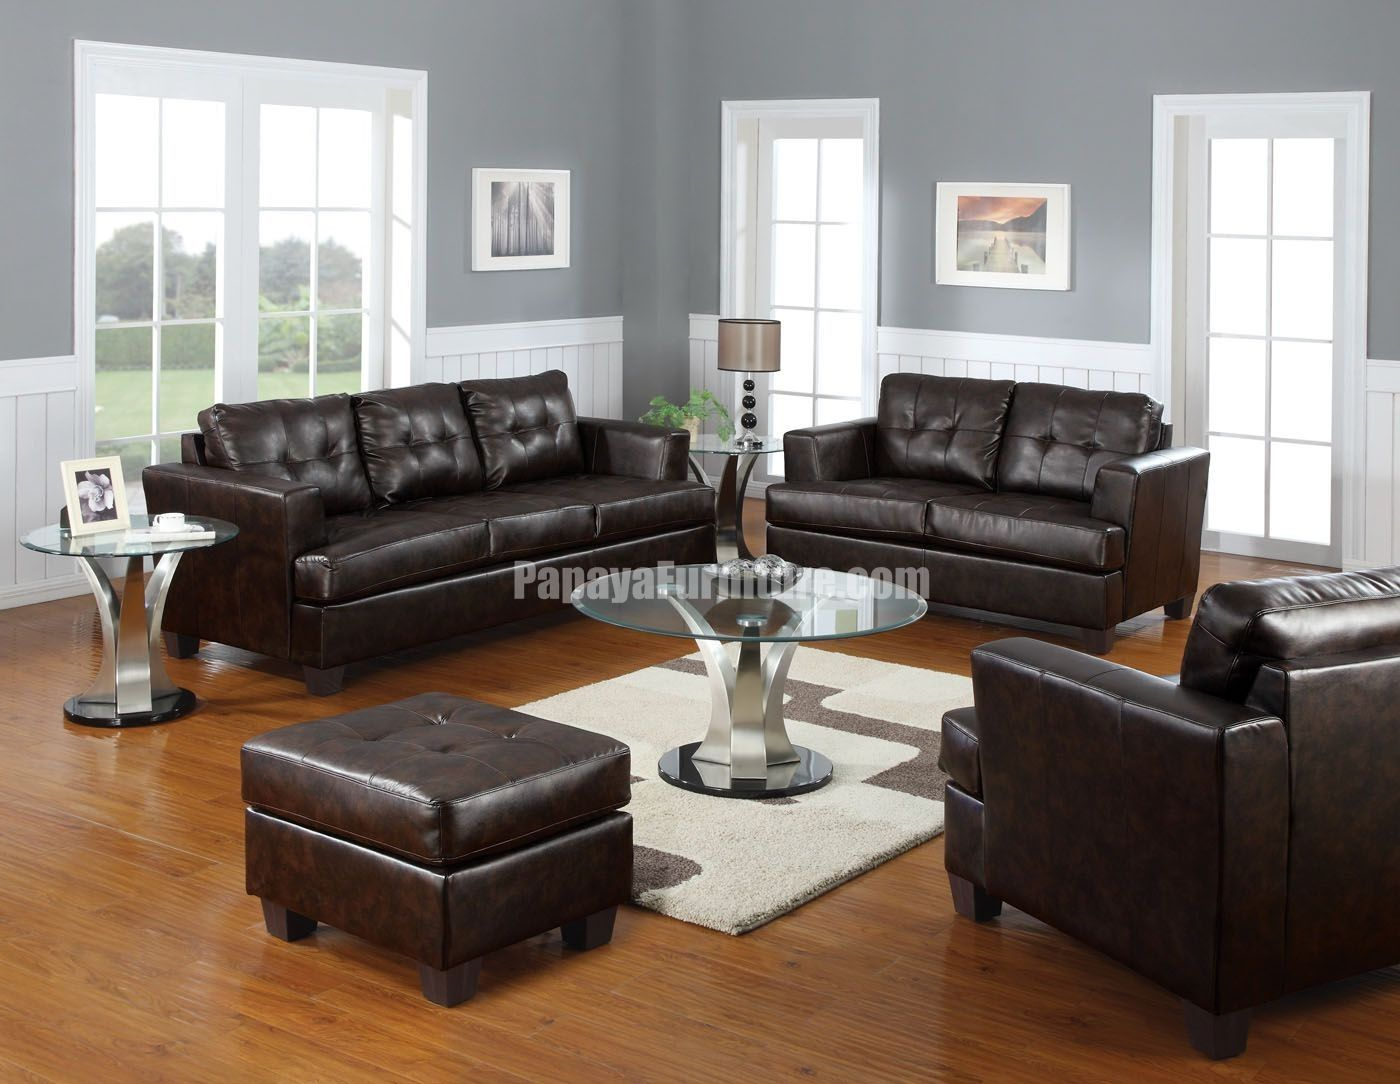 Dark Brown Couch Decorating Ideas Dark Brown Leather Couches